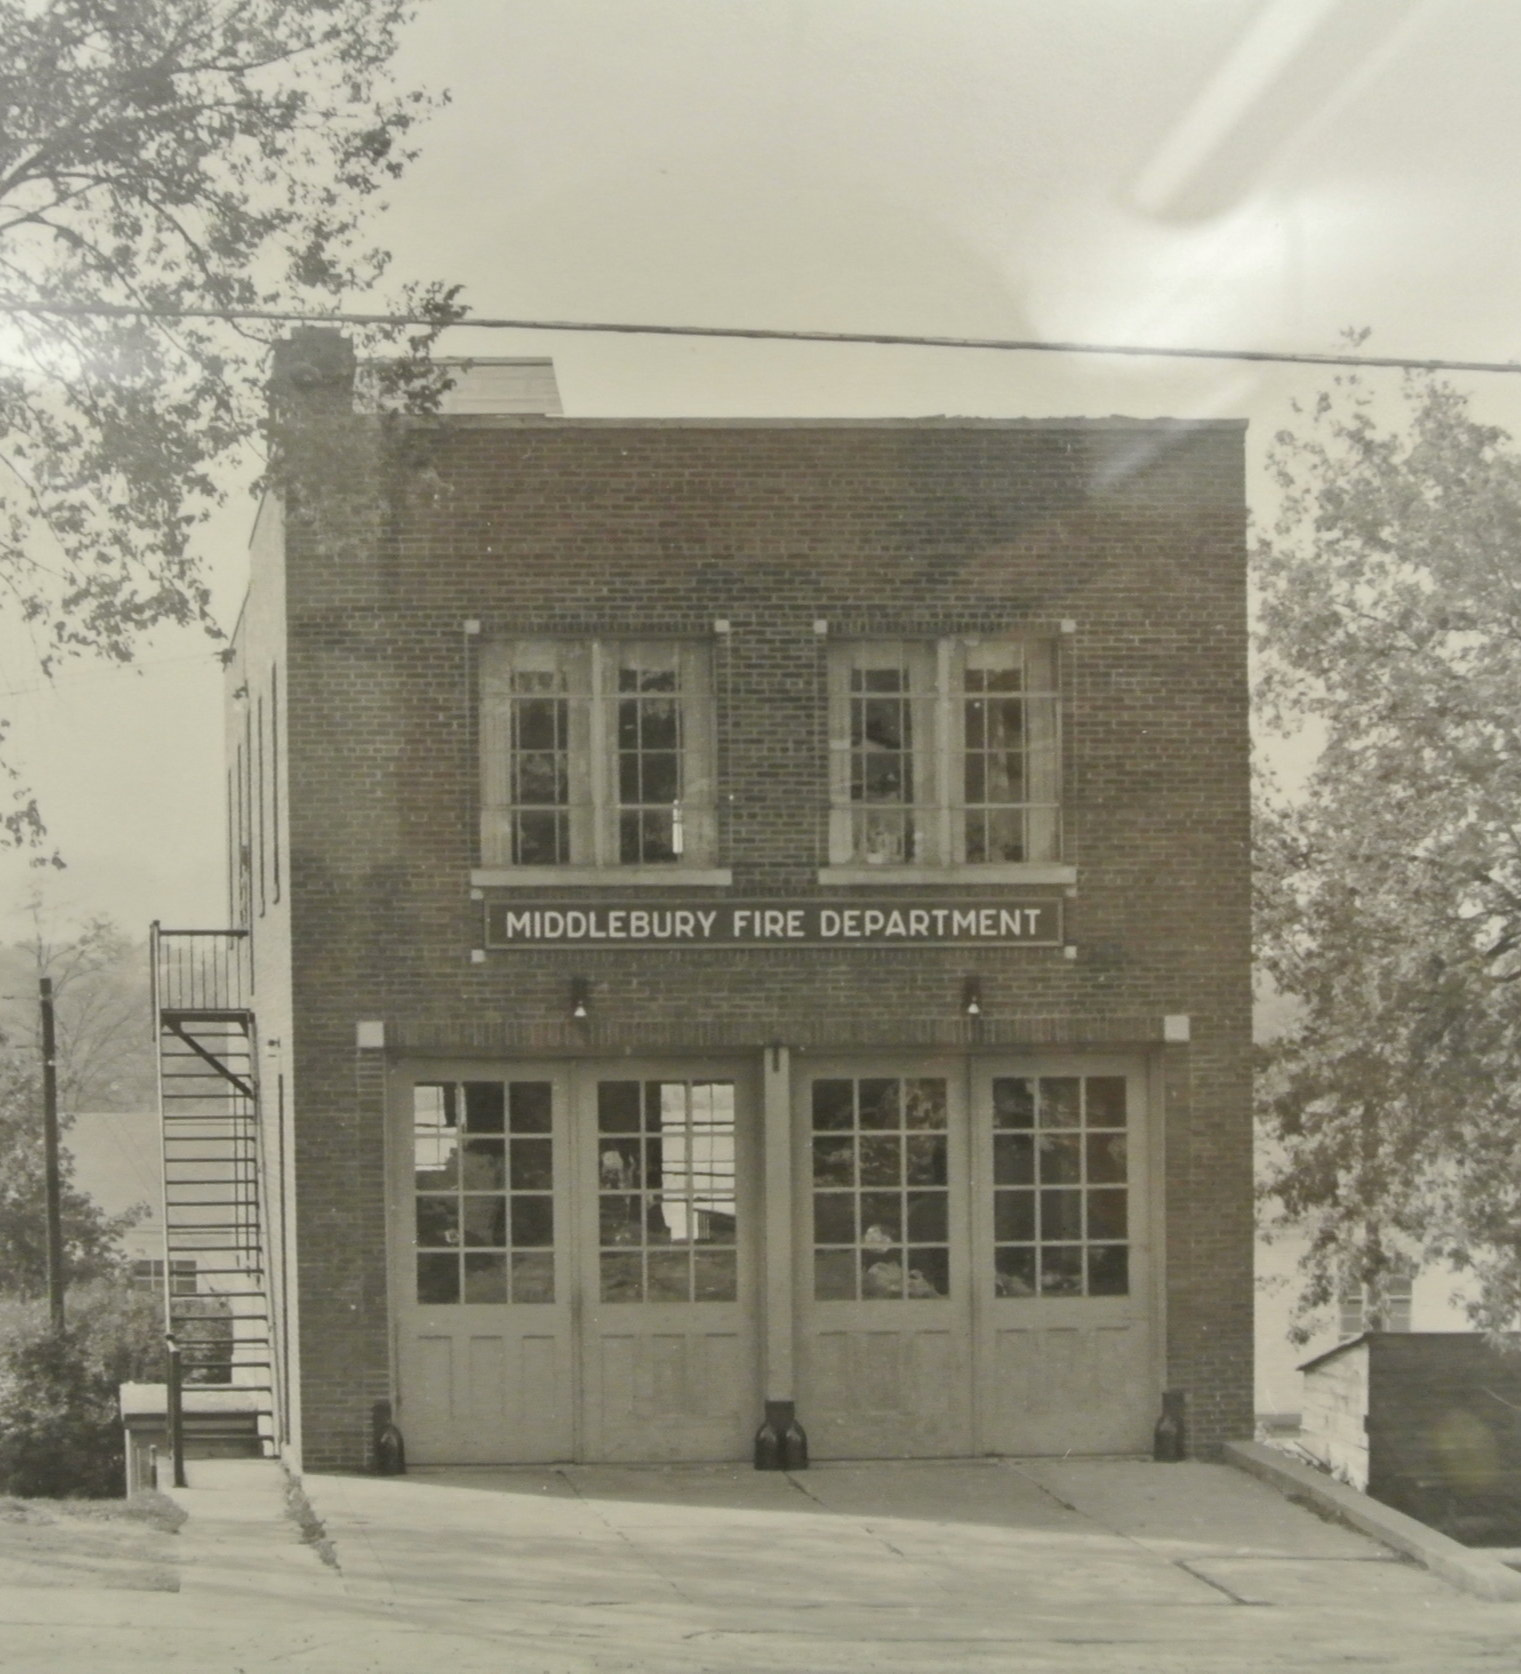 Original 1930s Fire Station